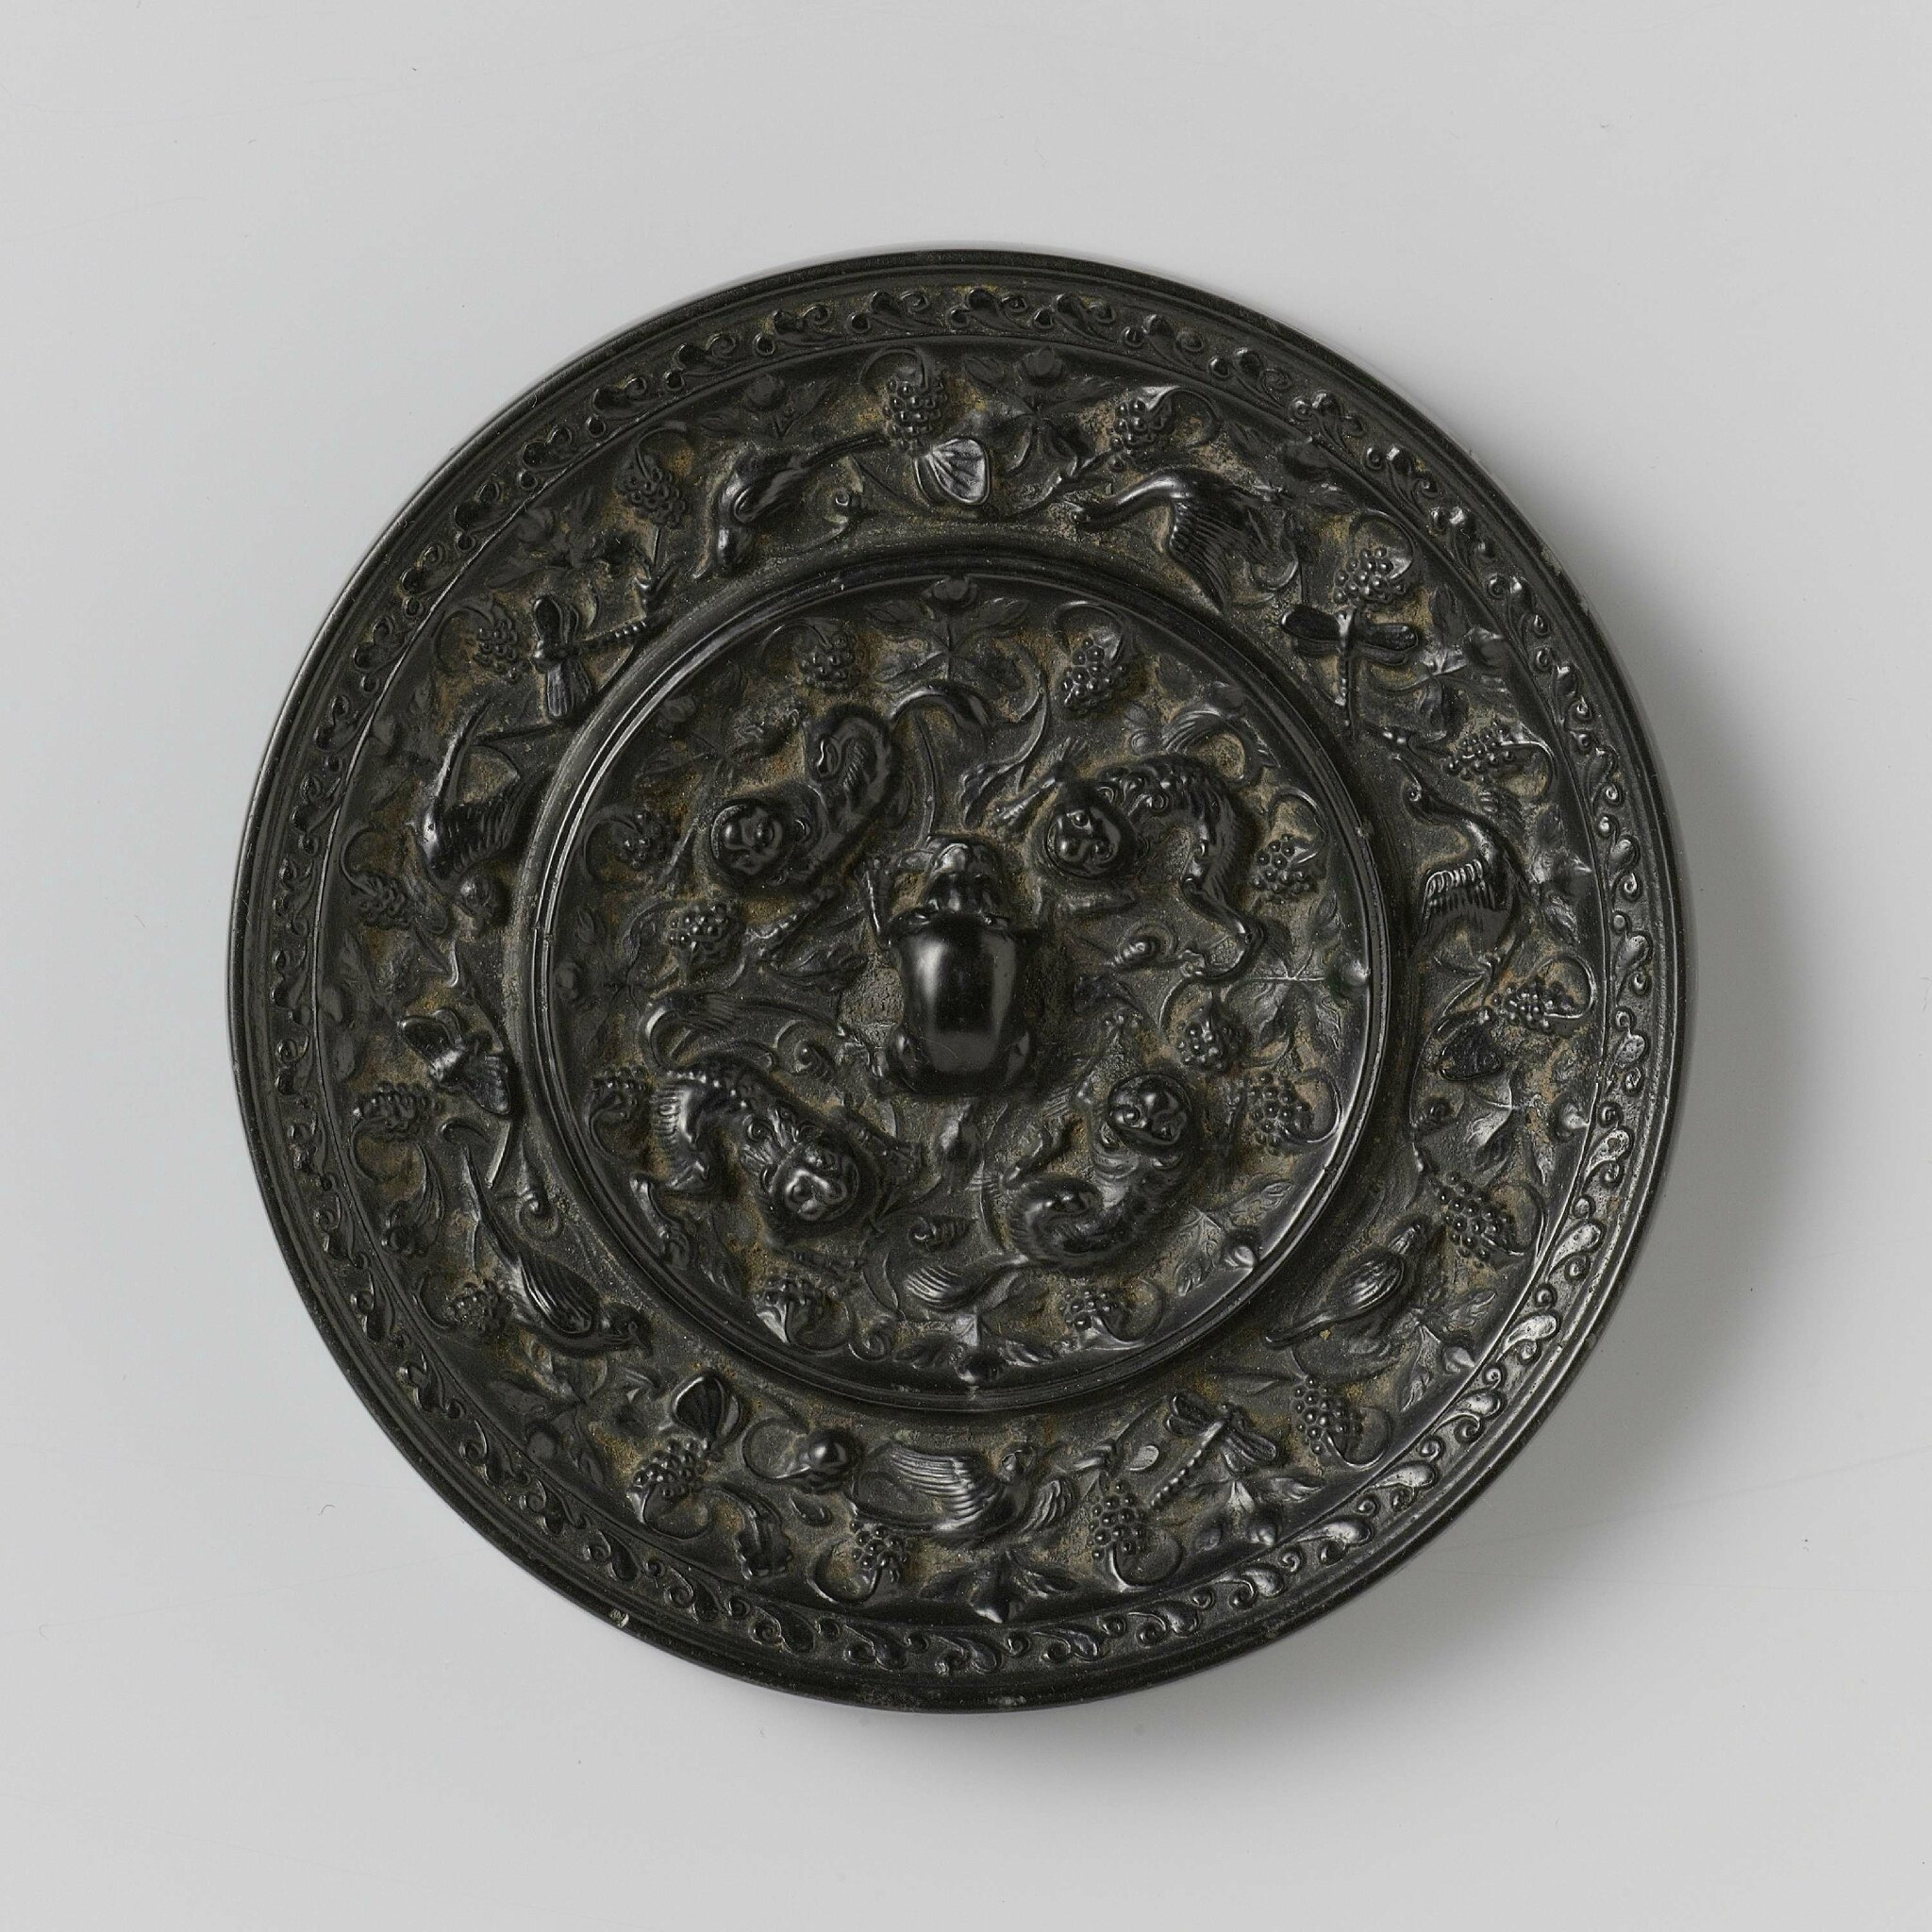 Bronze mirror, Tang dynasty (618 - 906)